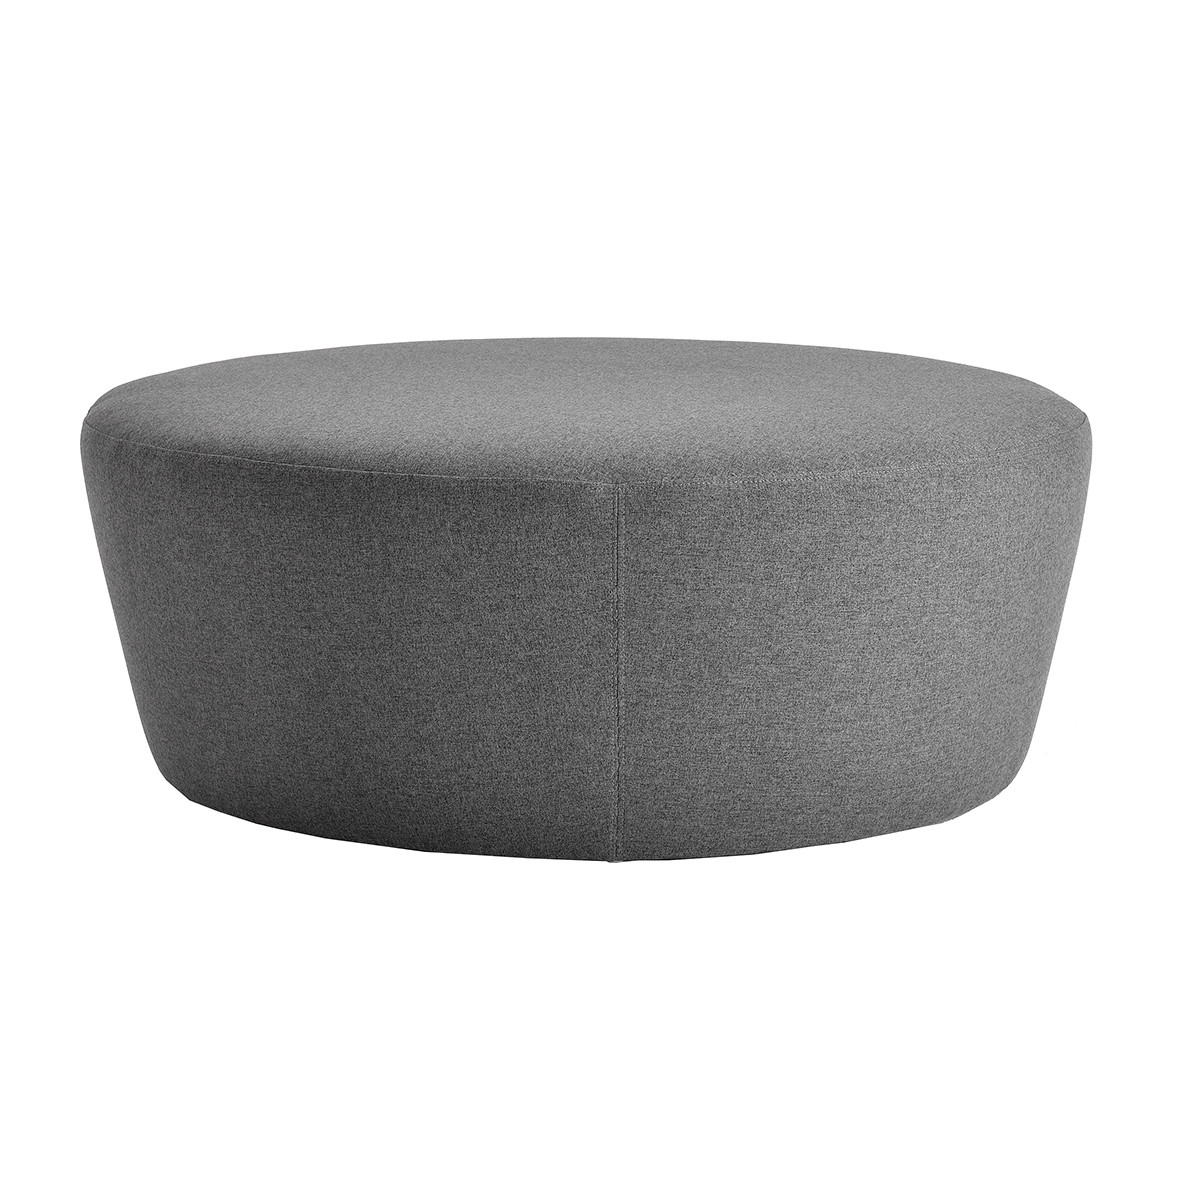 Sku cudi1624 lasse round upholstered ottoman is also sometimes listed under the following manufacturer numbers ot mxm astr fab dgry ot mxm astr vel lgry